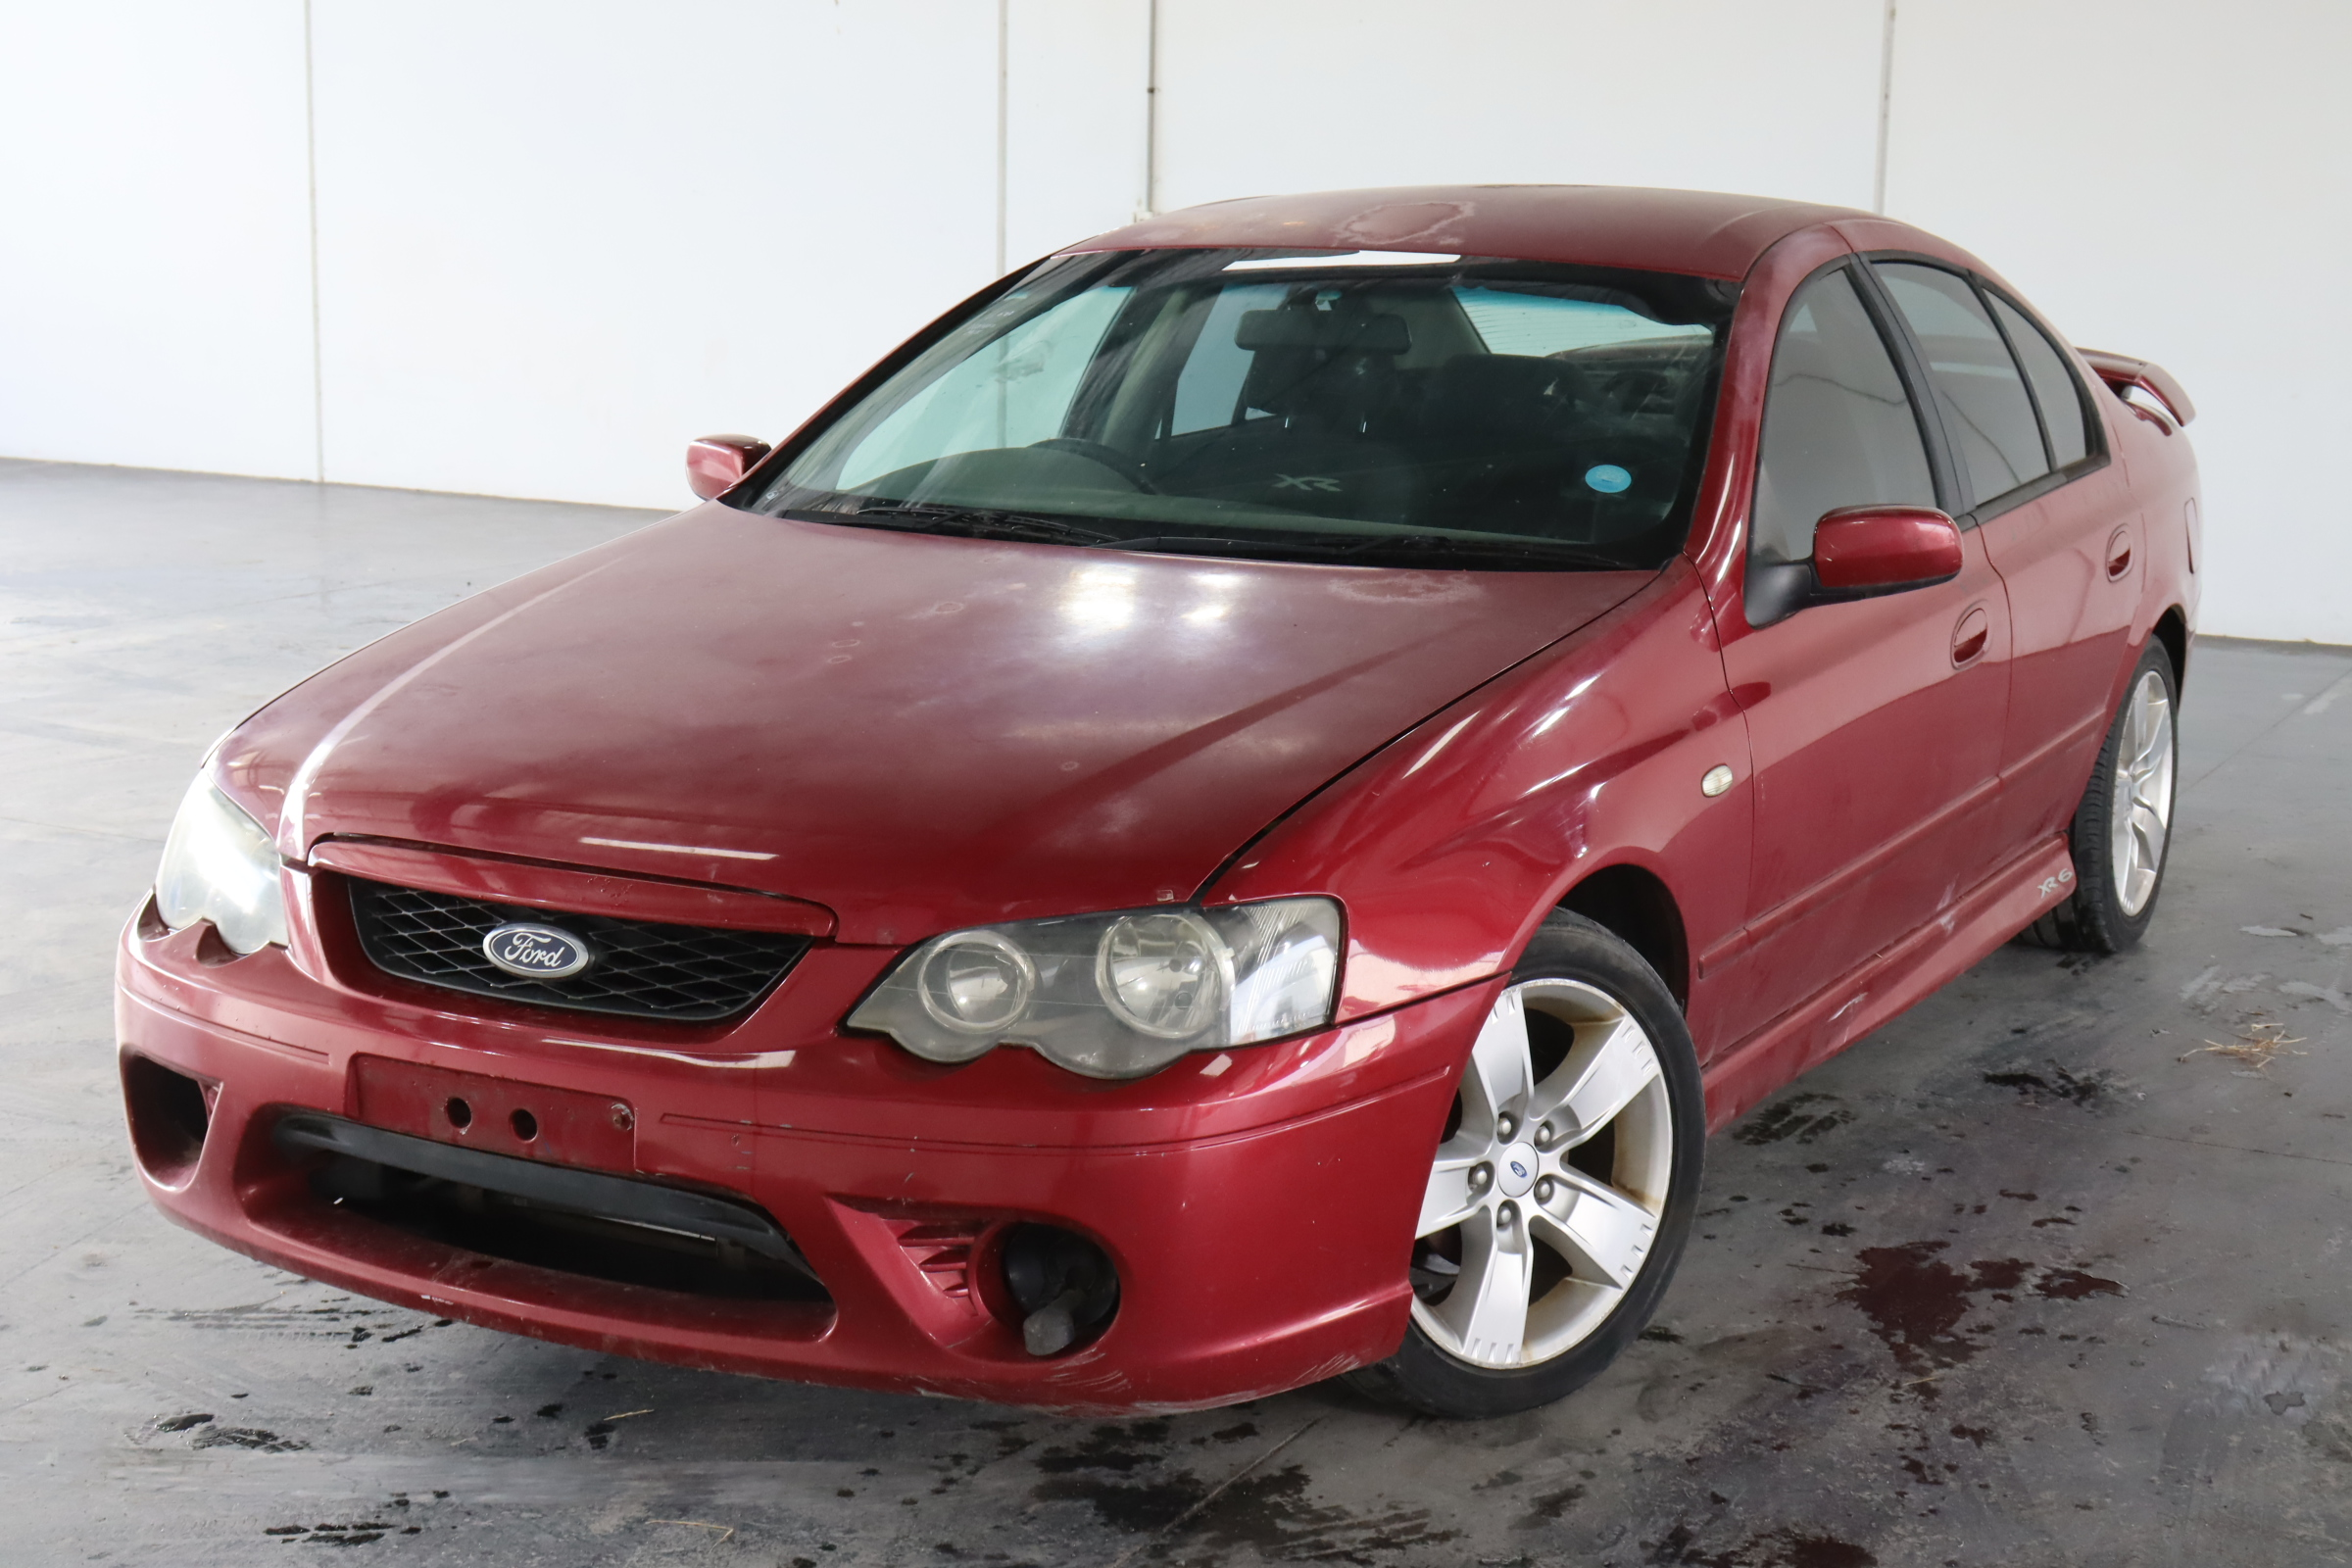 2006 Ford Falcon XR6 BF MKII Automatic Sedan (WOVR Inspected)